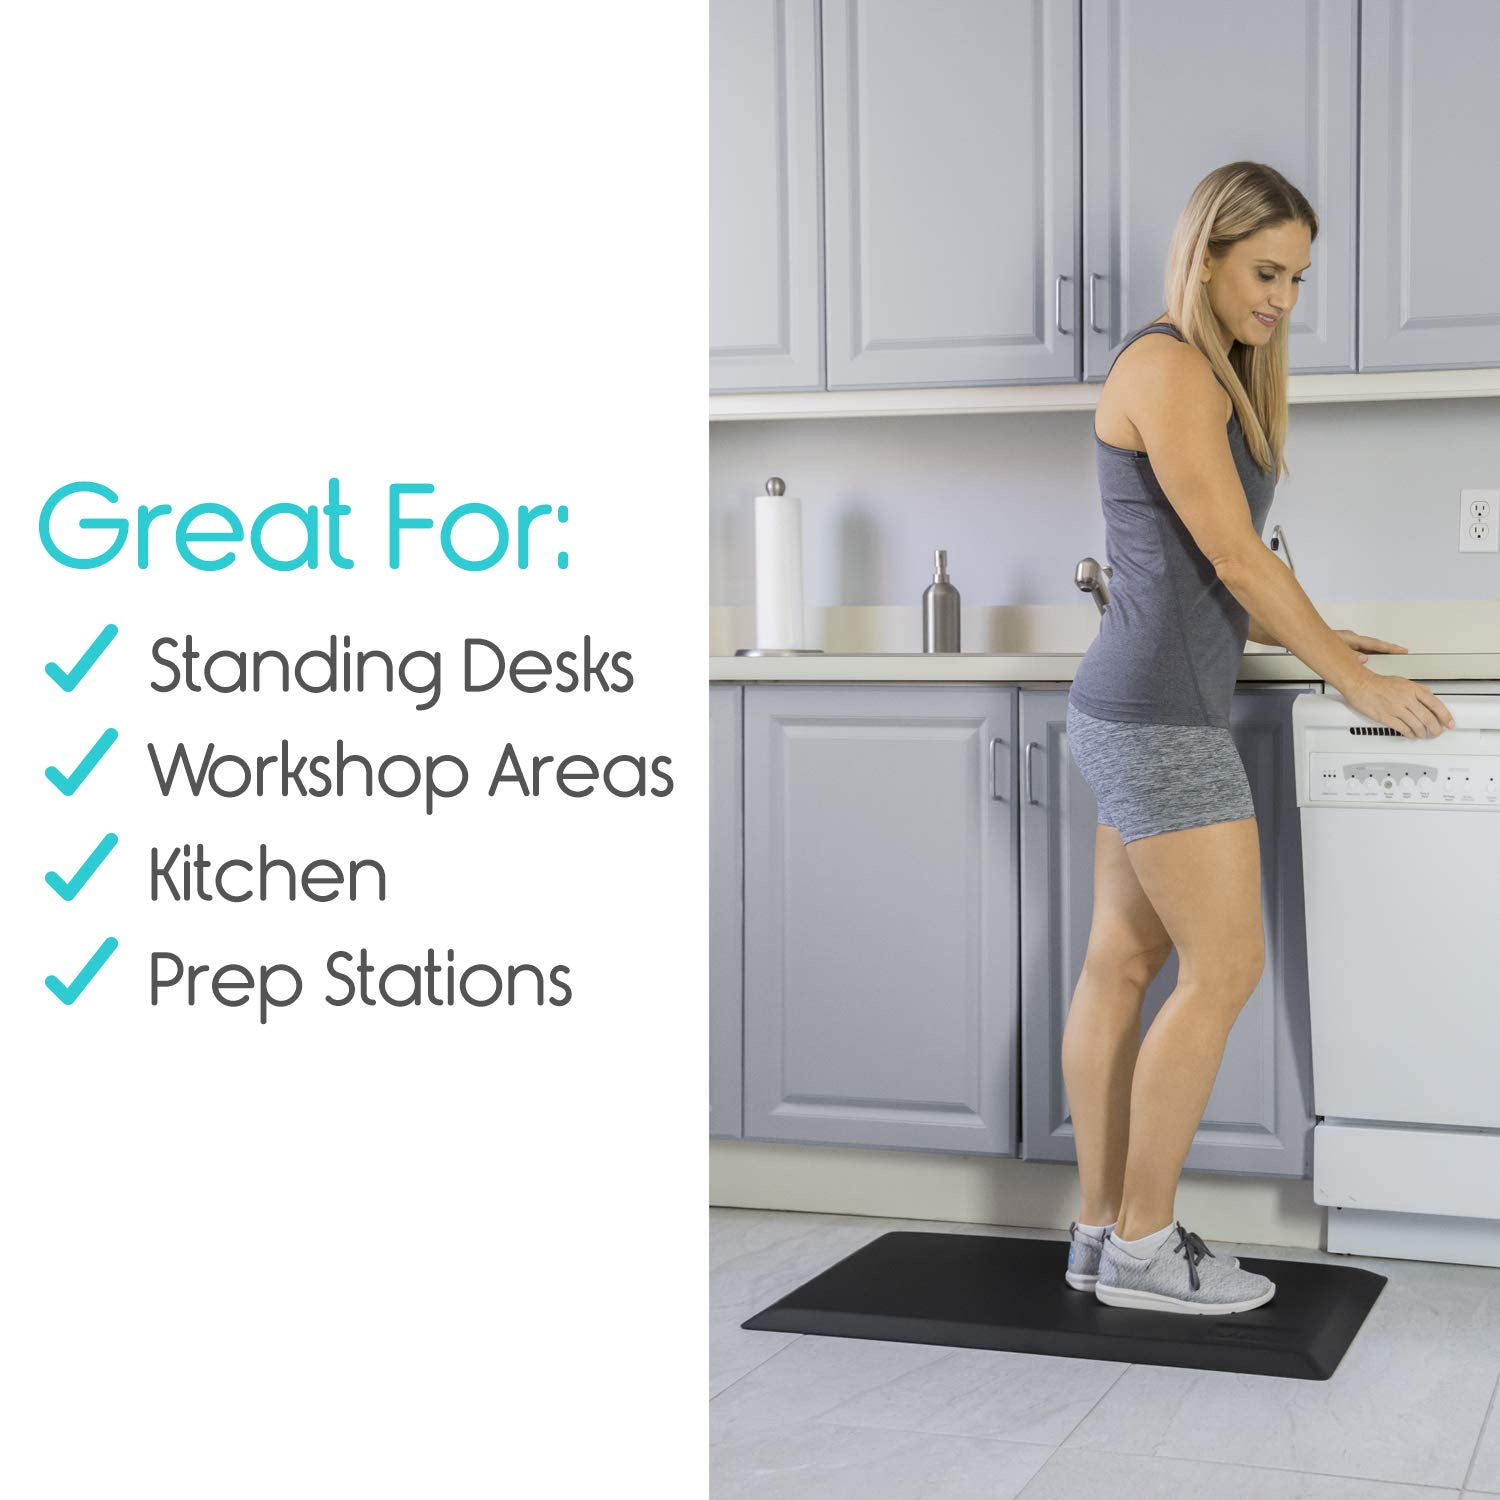 Vive Anti Fatigue Mat - Support For Standing Desk Office & Home Kitchen Workstation - Ergonomic Comfort Thick Waterproof Pad - Non Slip Bottom & Bevelled Edge - Cushion 17.5'' x 32'' - Adults & Elderly by Vive (Image #7)